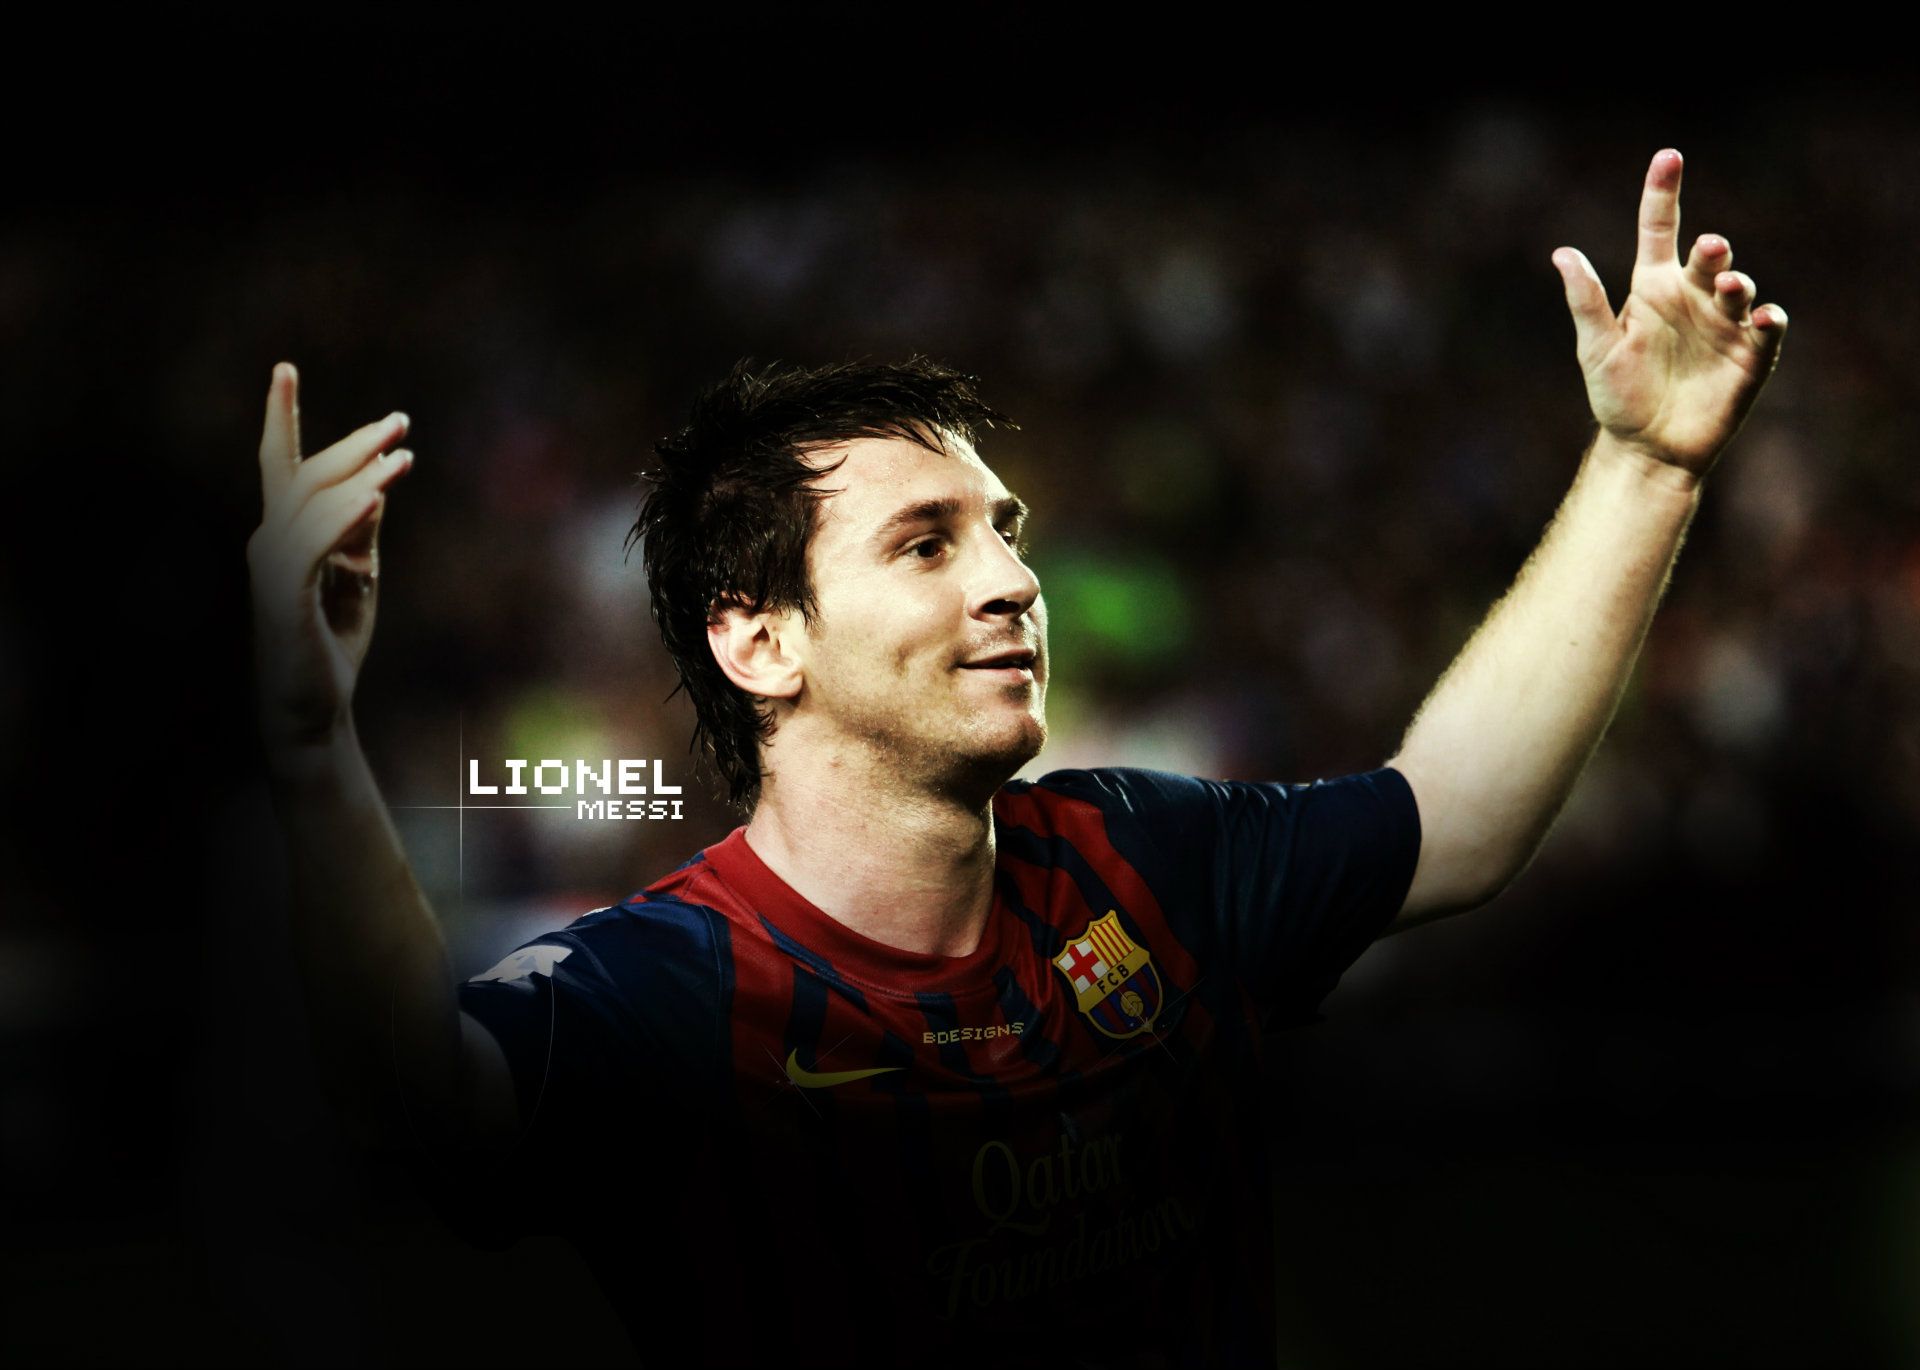 Lionel Messi  p HD Wallpapers  Wallpaper  1920x1370